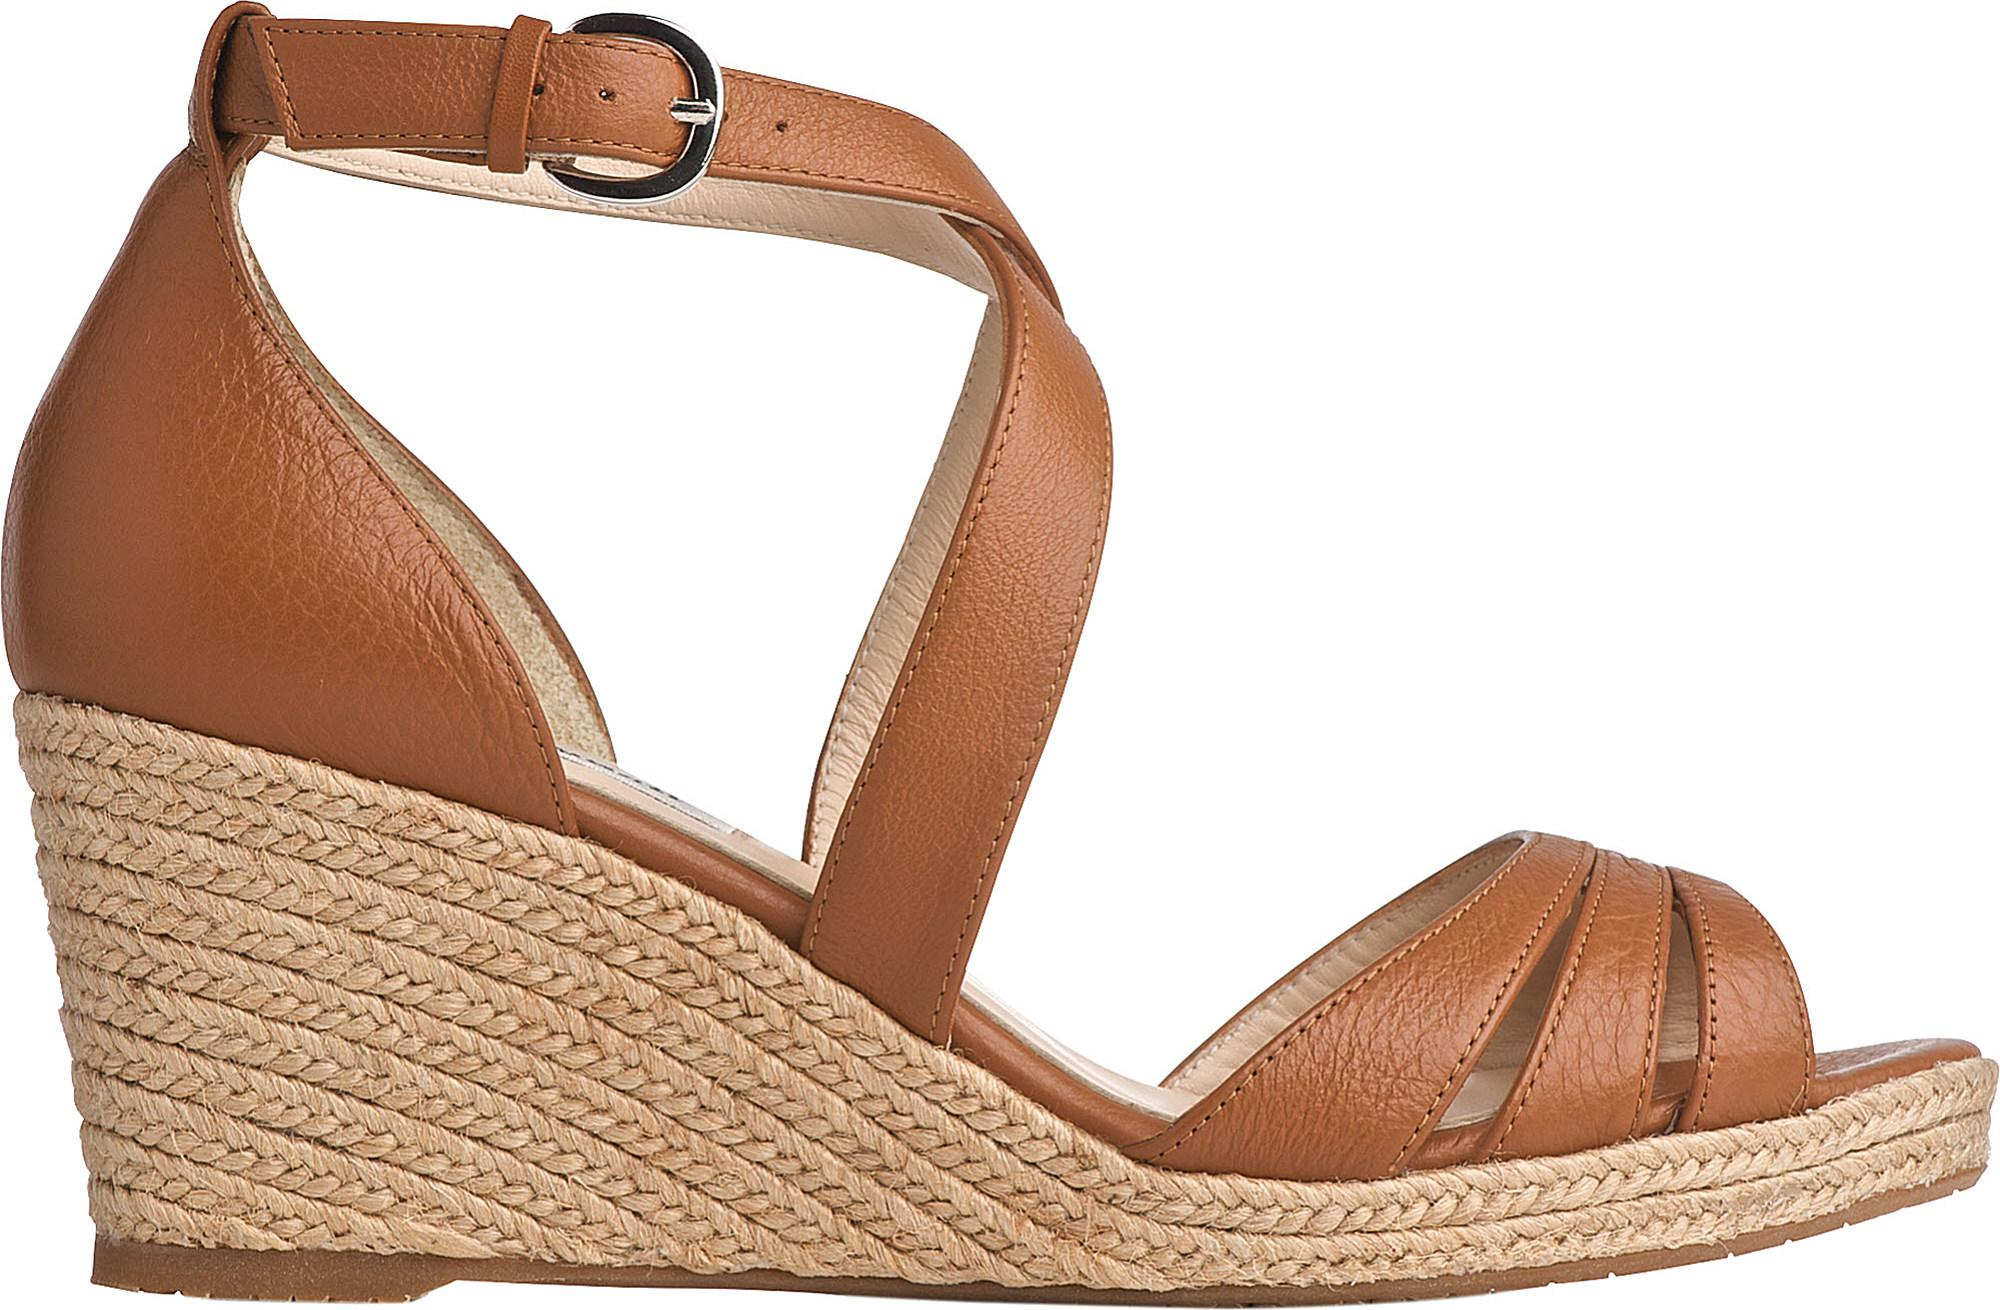 8be840c4da2 Lyst - L.K.Bennett Priya Espadrille Wedge Sandals in Brown